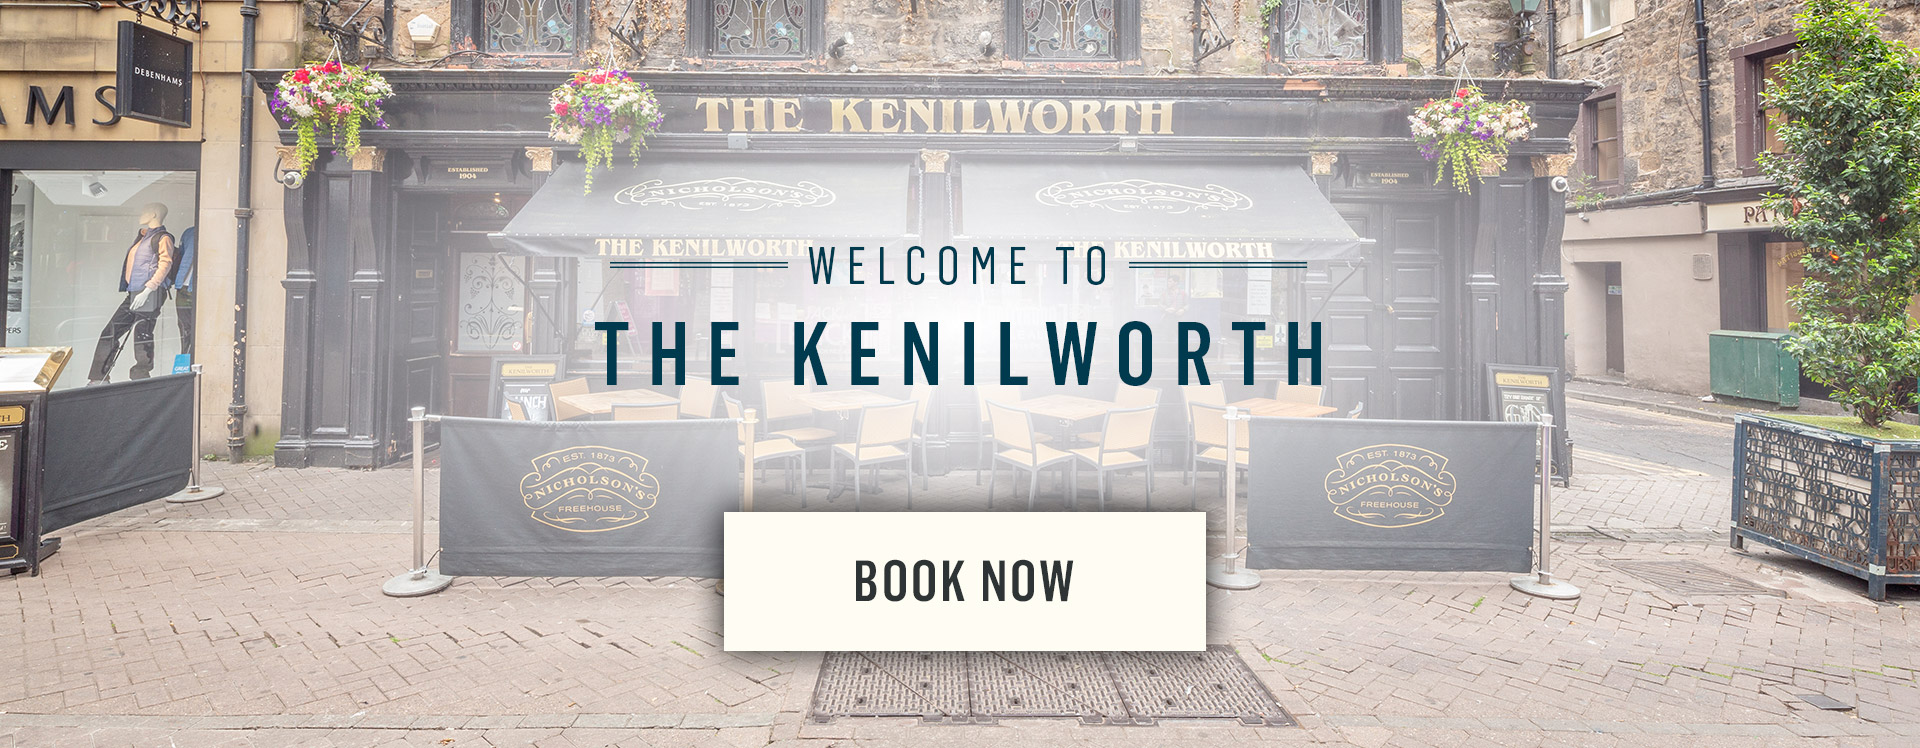 Welcome to The Kenilworth - Book Now